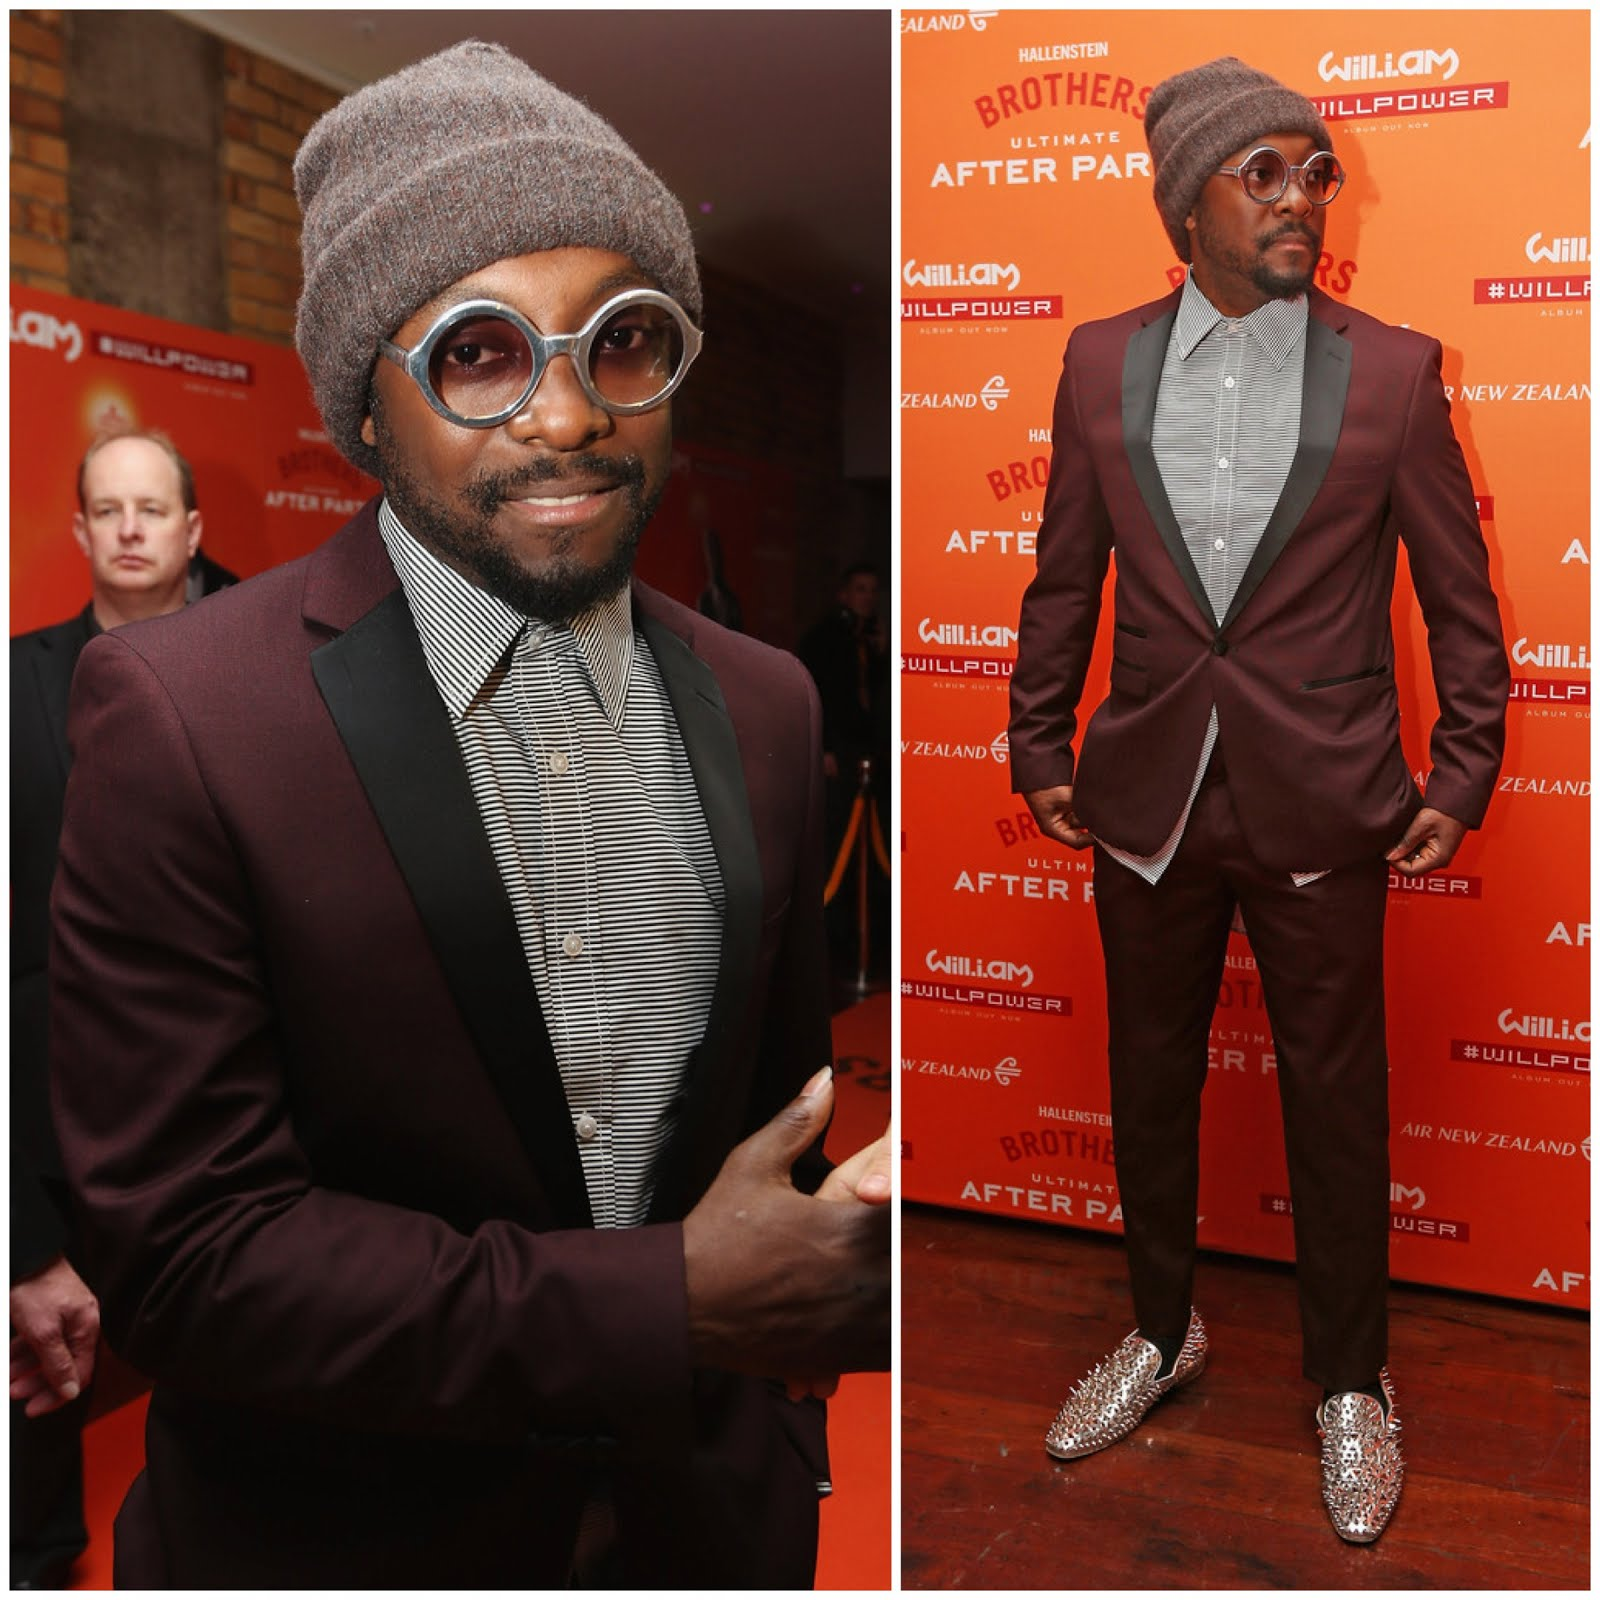 00O00 Menswear Blog: Will.i.am in Christian Louboutin Dandy Pik Pik - 'The Ultimate After Party' Auckland, New Zealand May 2013